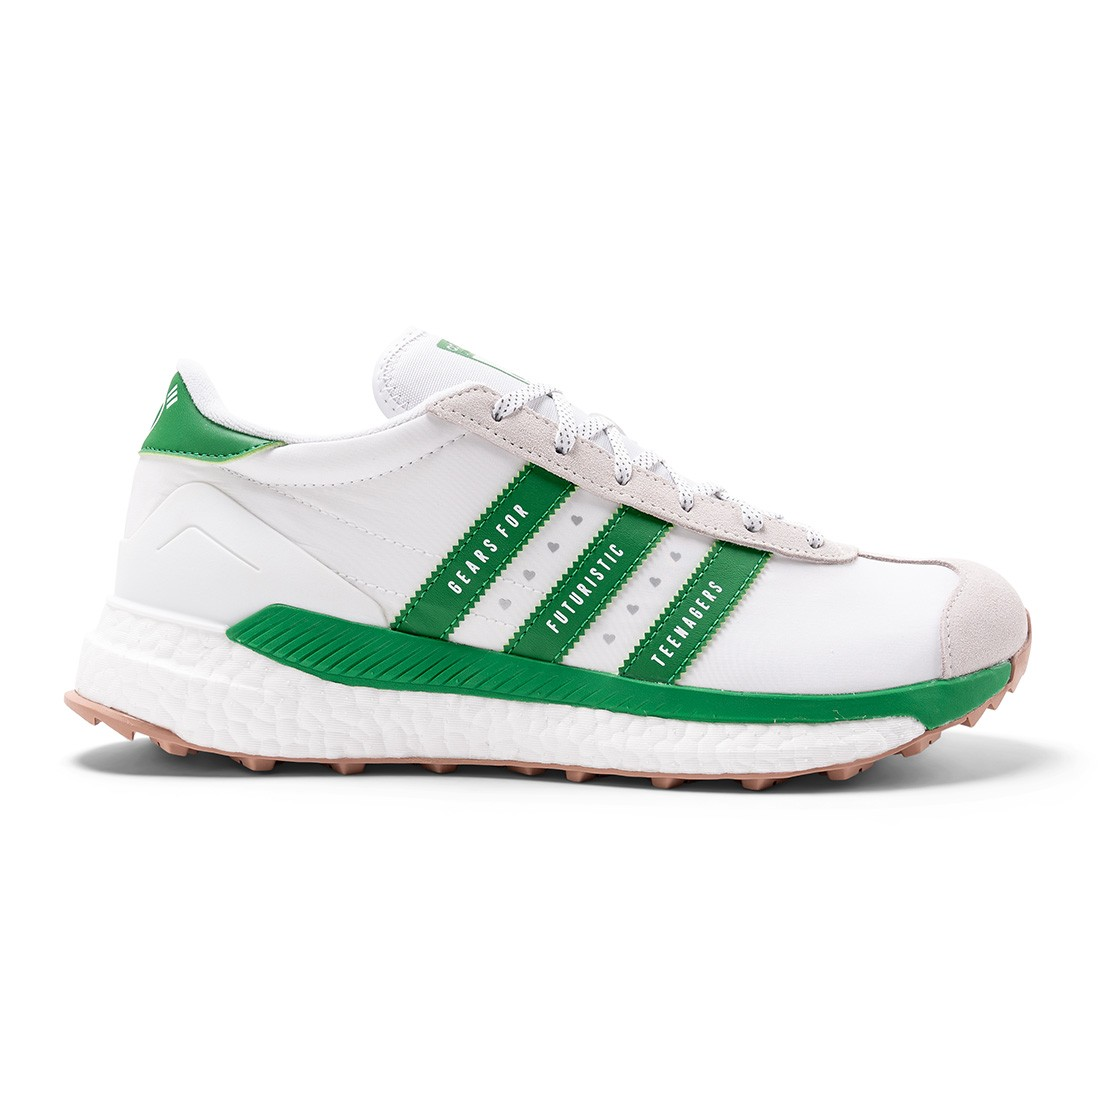 Adidas x Human Made Men Country (white / green / off white)